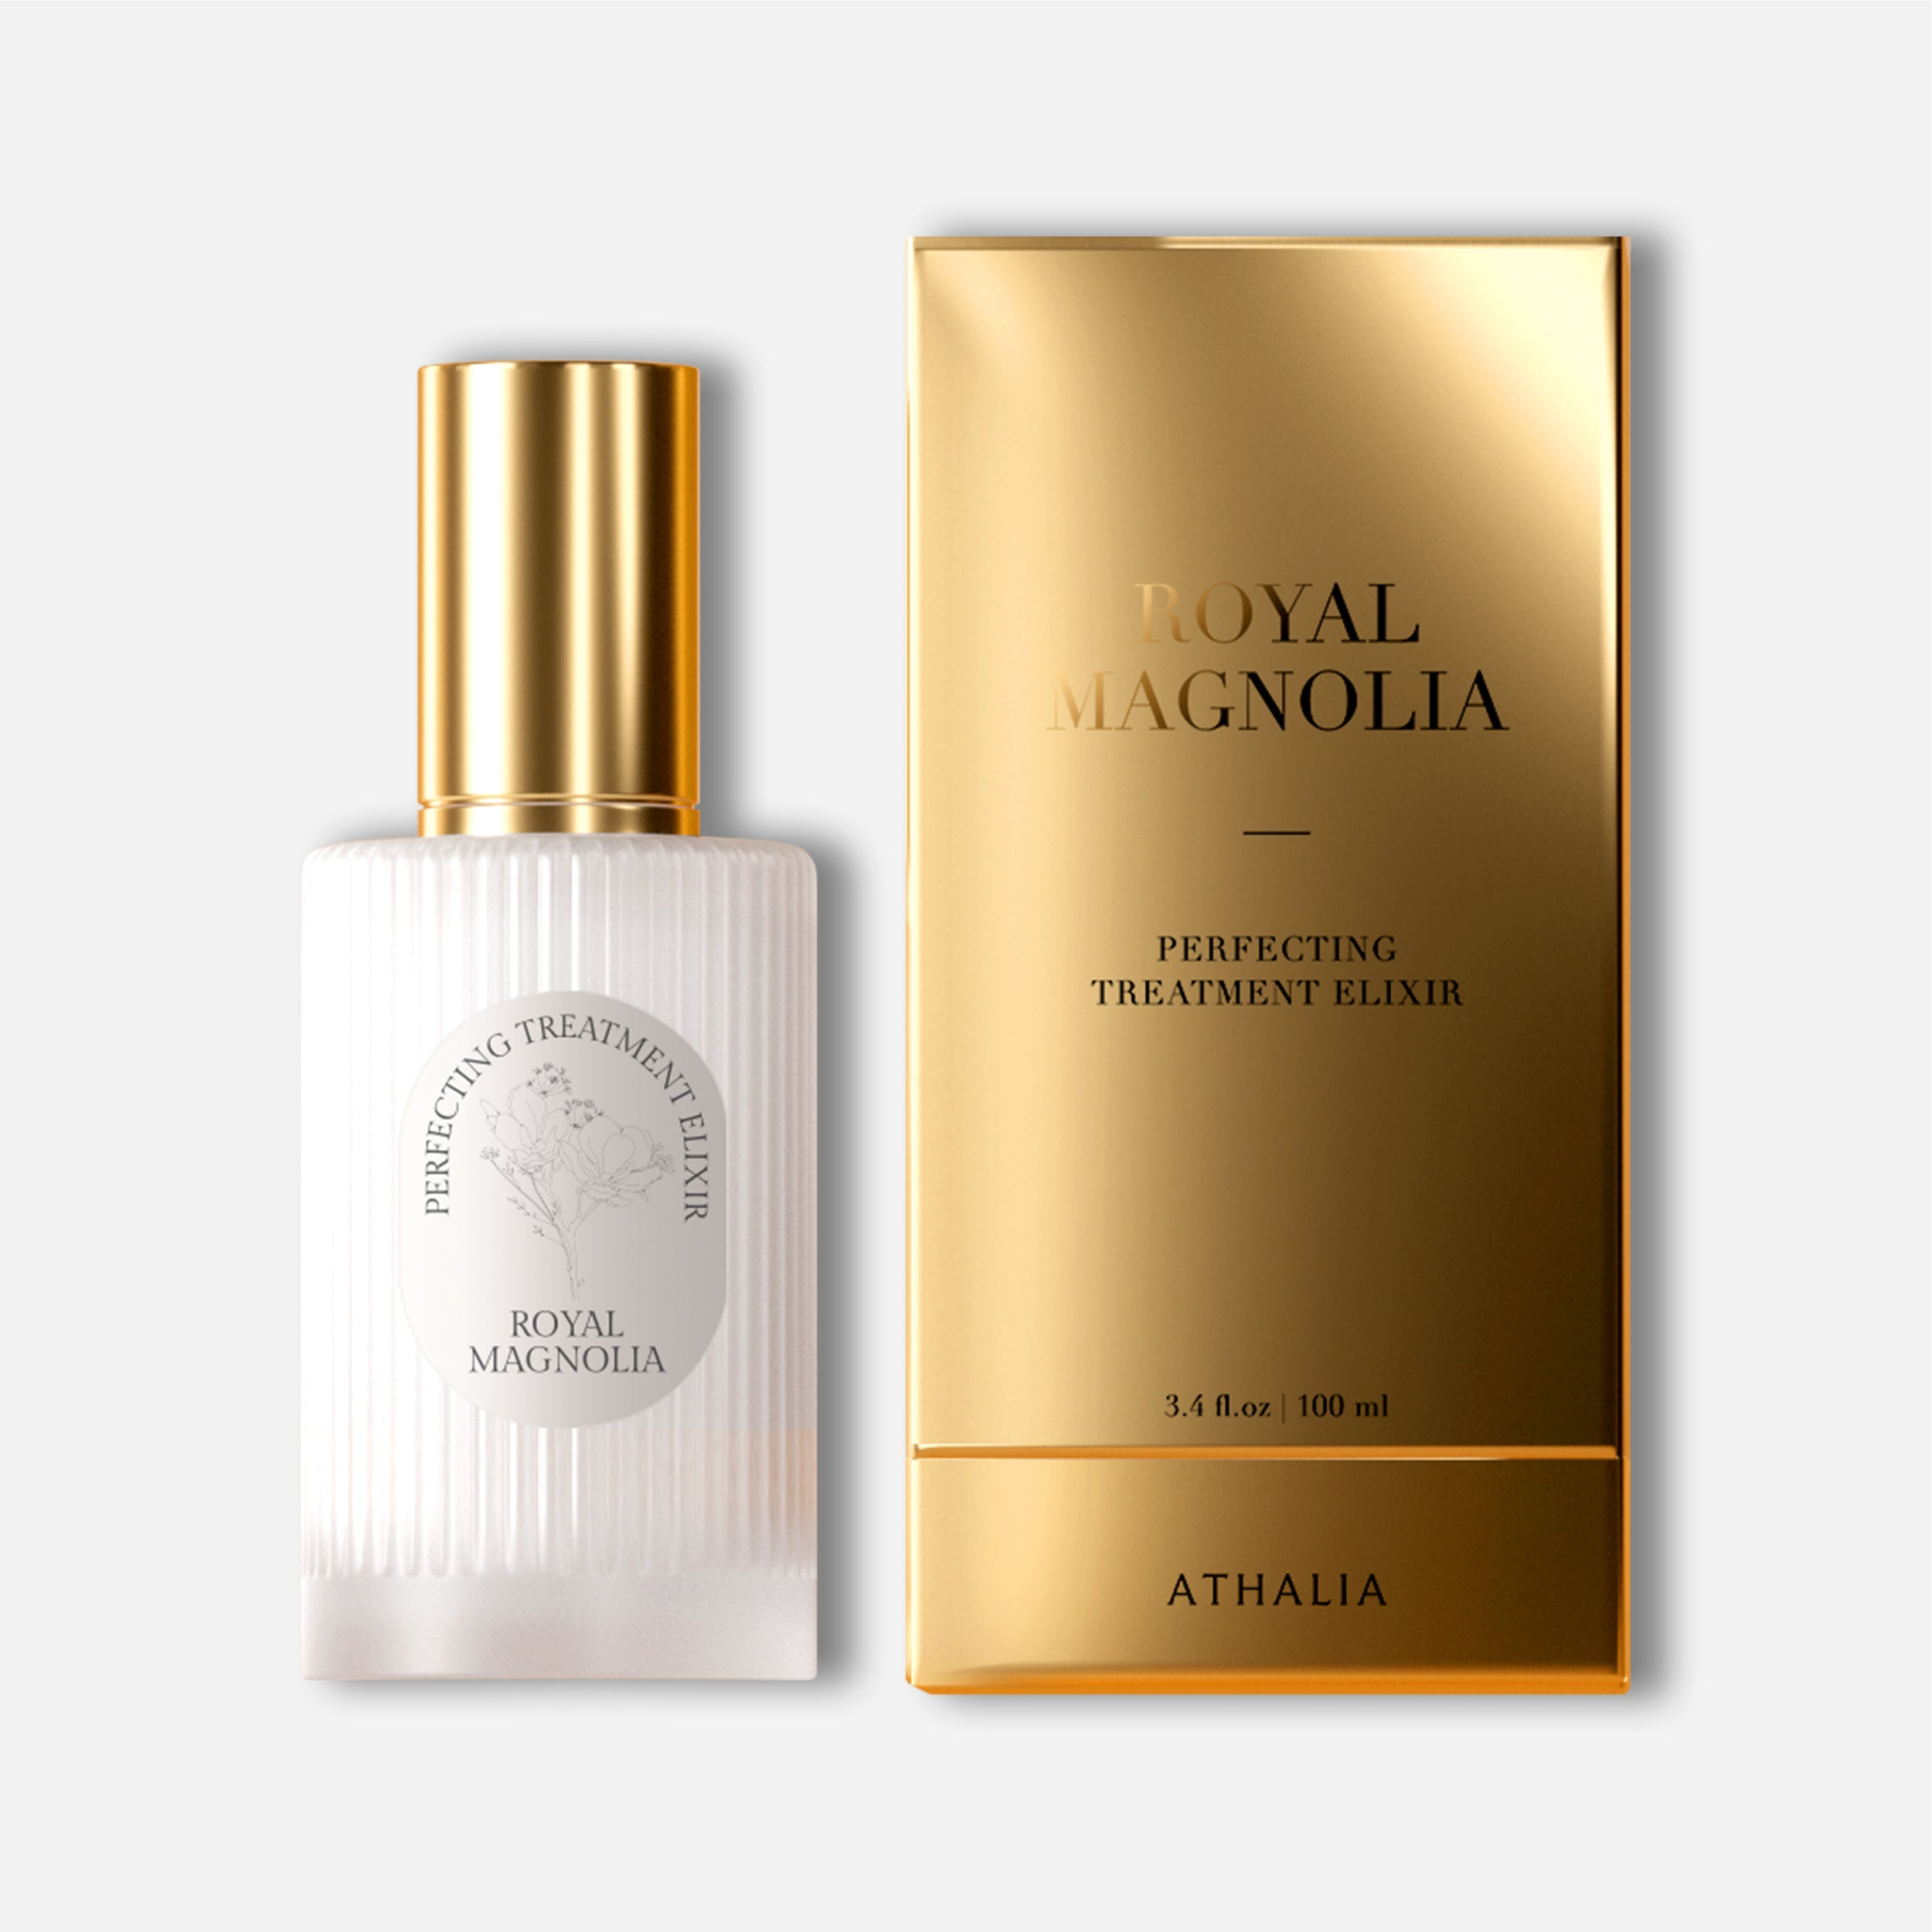 ATHALIA Perfecting Treatment Elixir